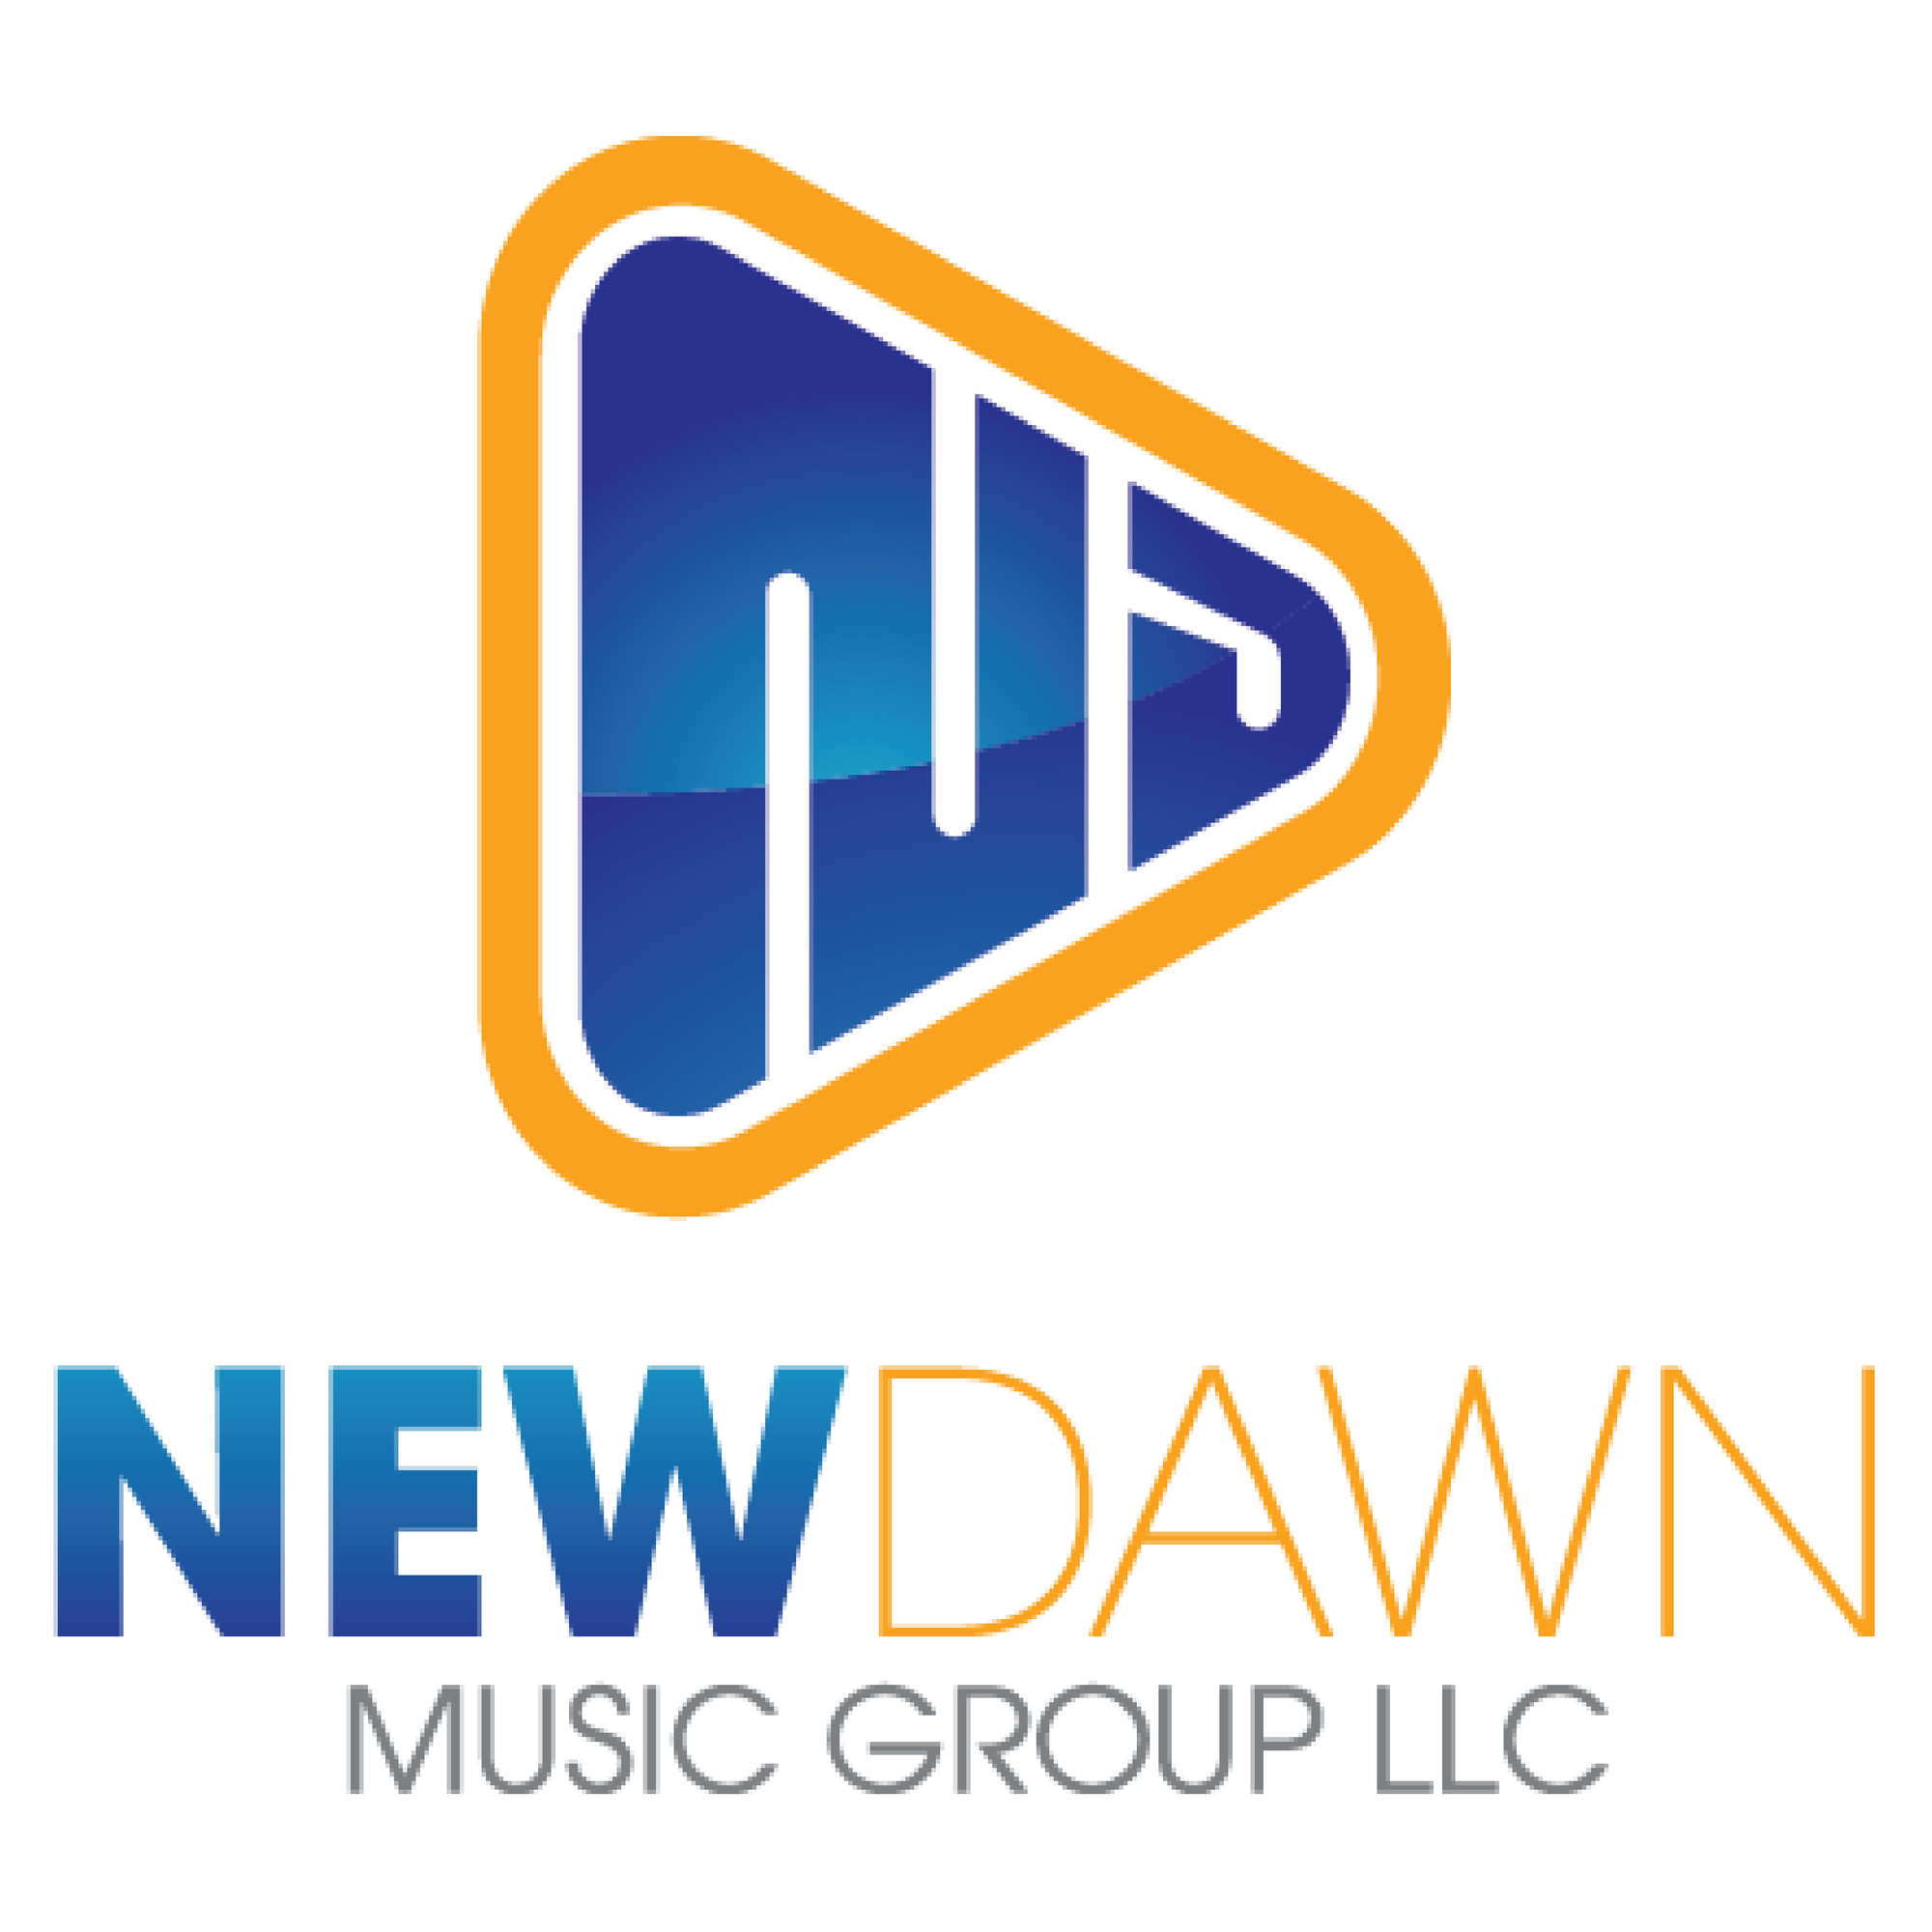 New Dawn Music Group